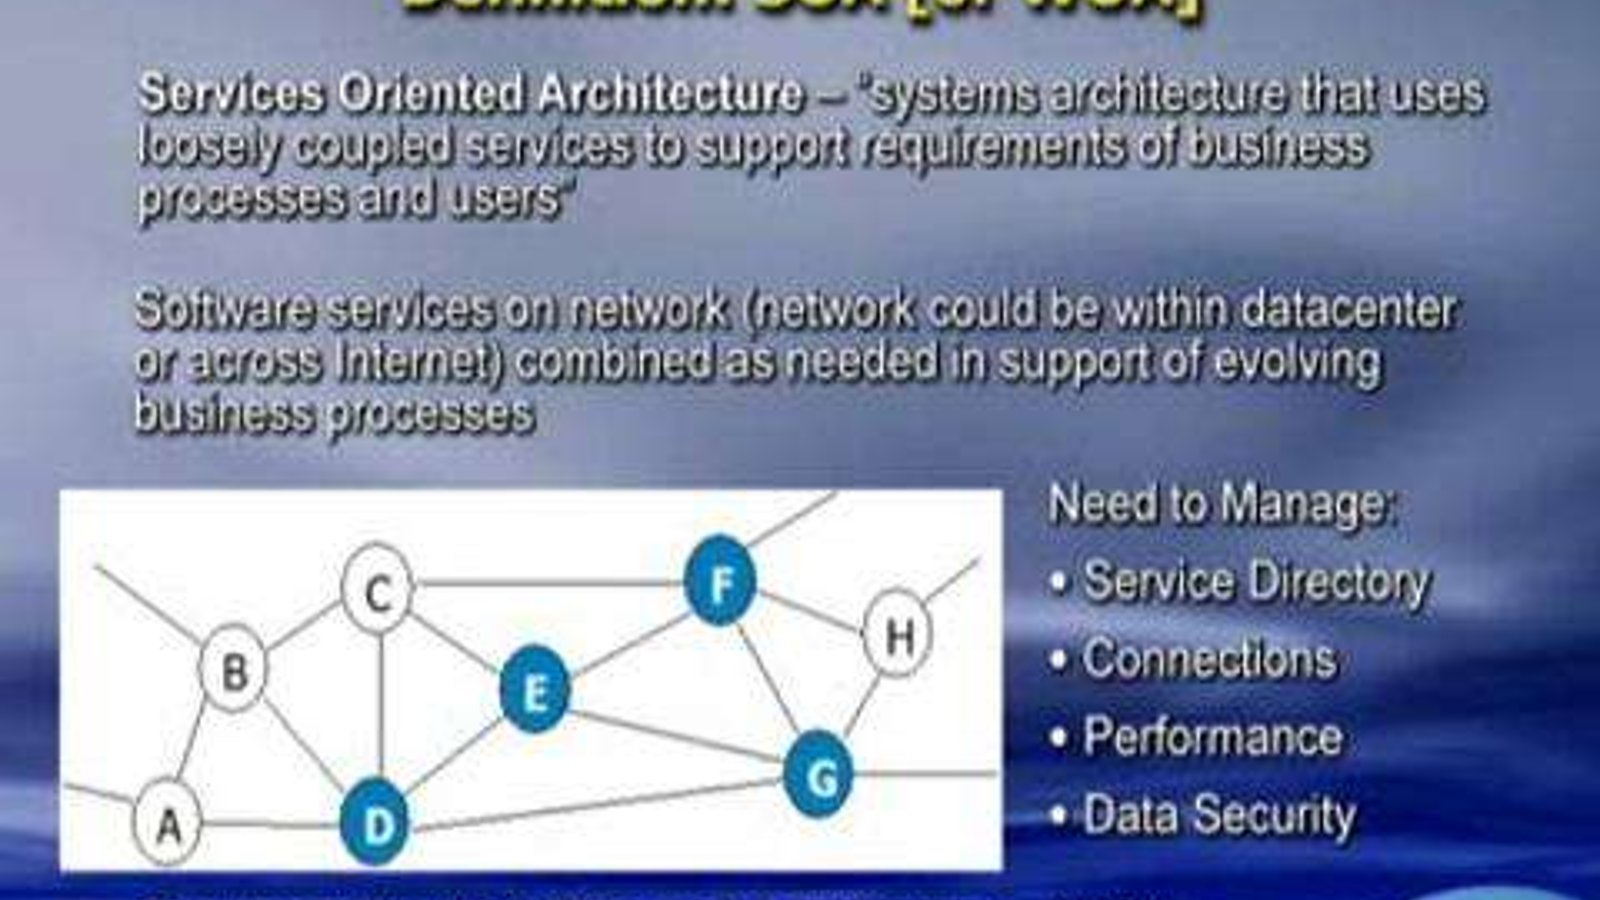 Principles of Cloud Computing - Perspectives on Business, Technology & Cost